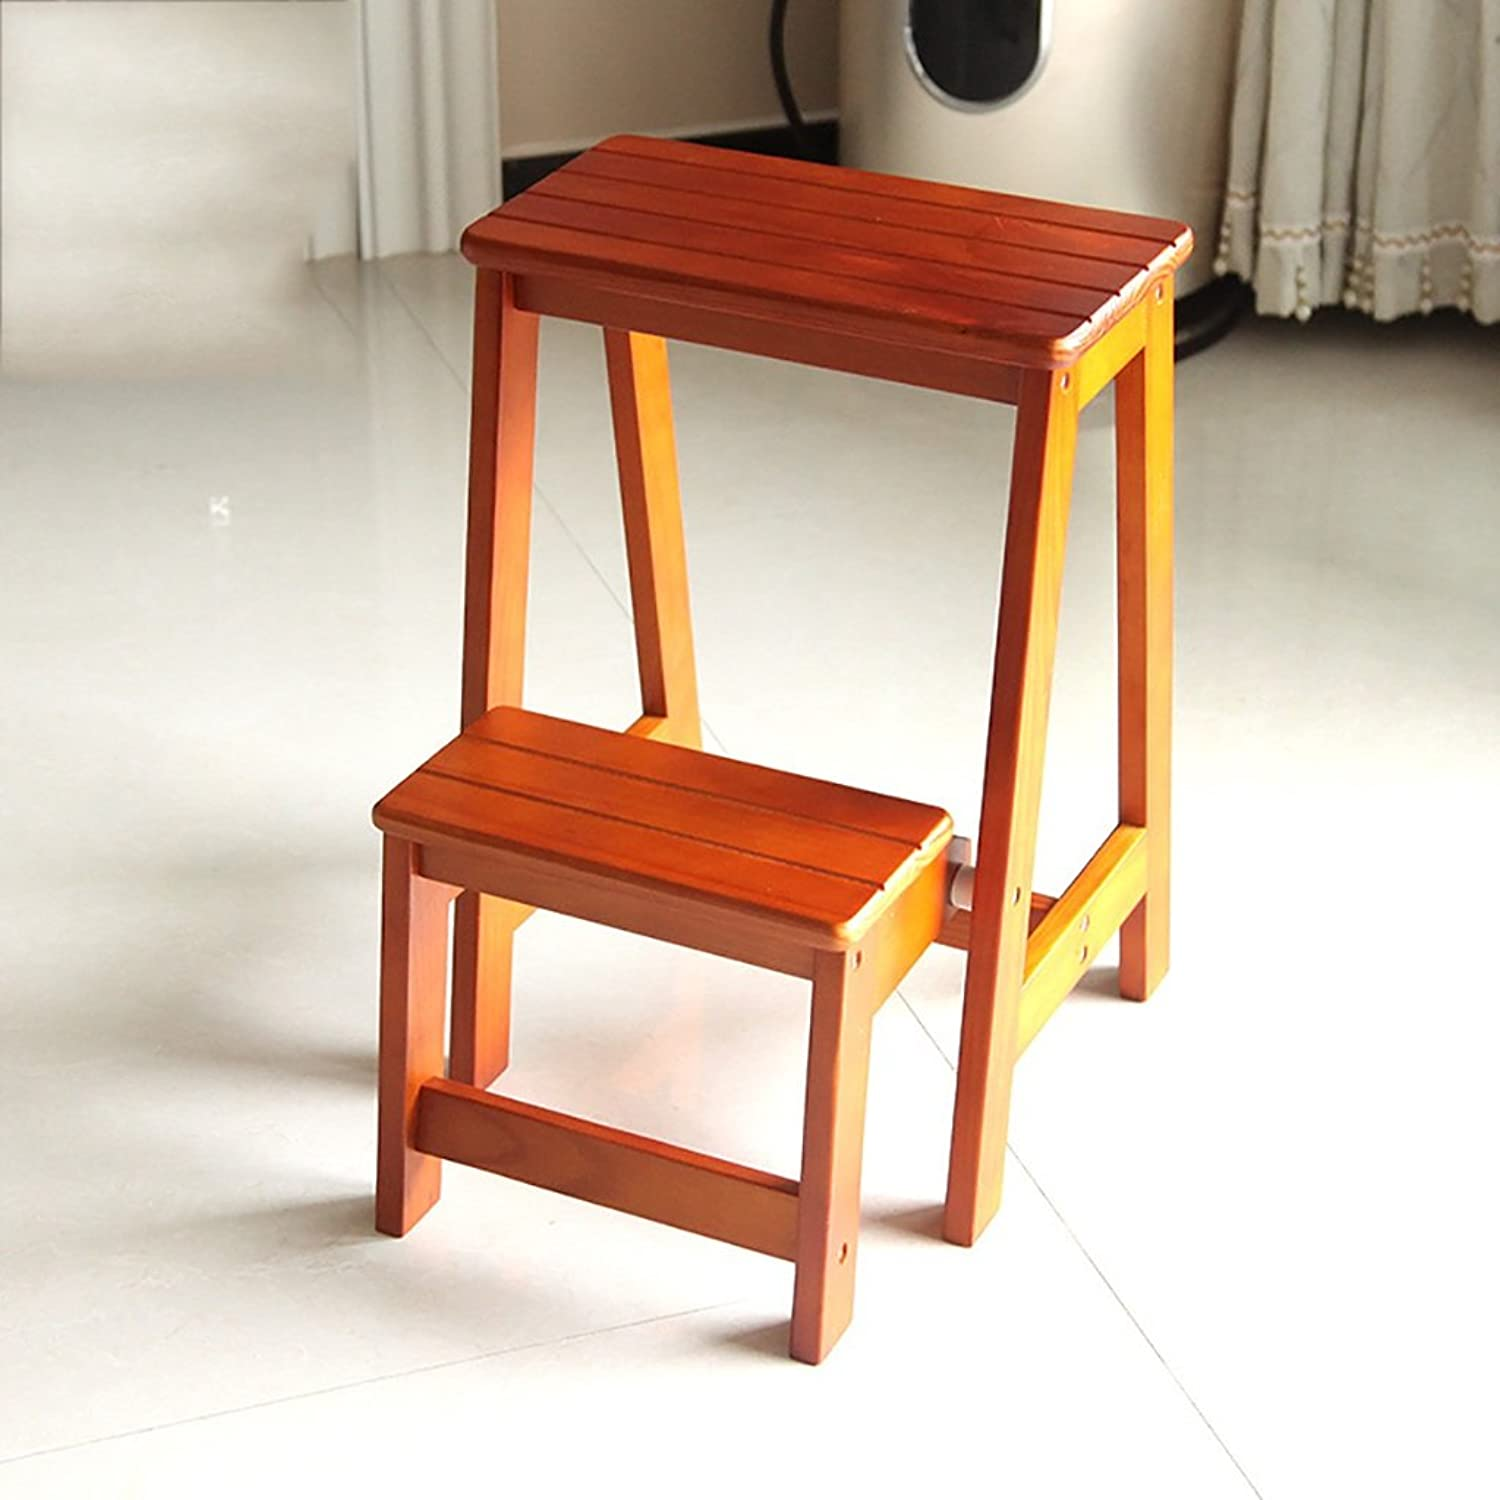 PENGFEI Folding Chair Stairs Multifunction Dual Use Pine 2 Steps, 4 colors, 29  48  55CM Furniture (color   Light Walnut)